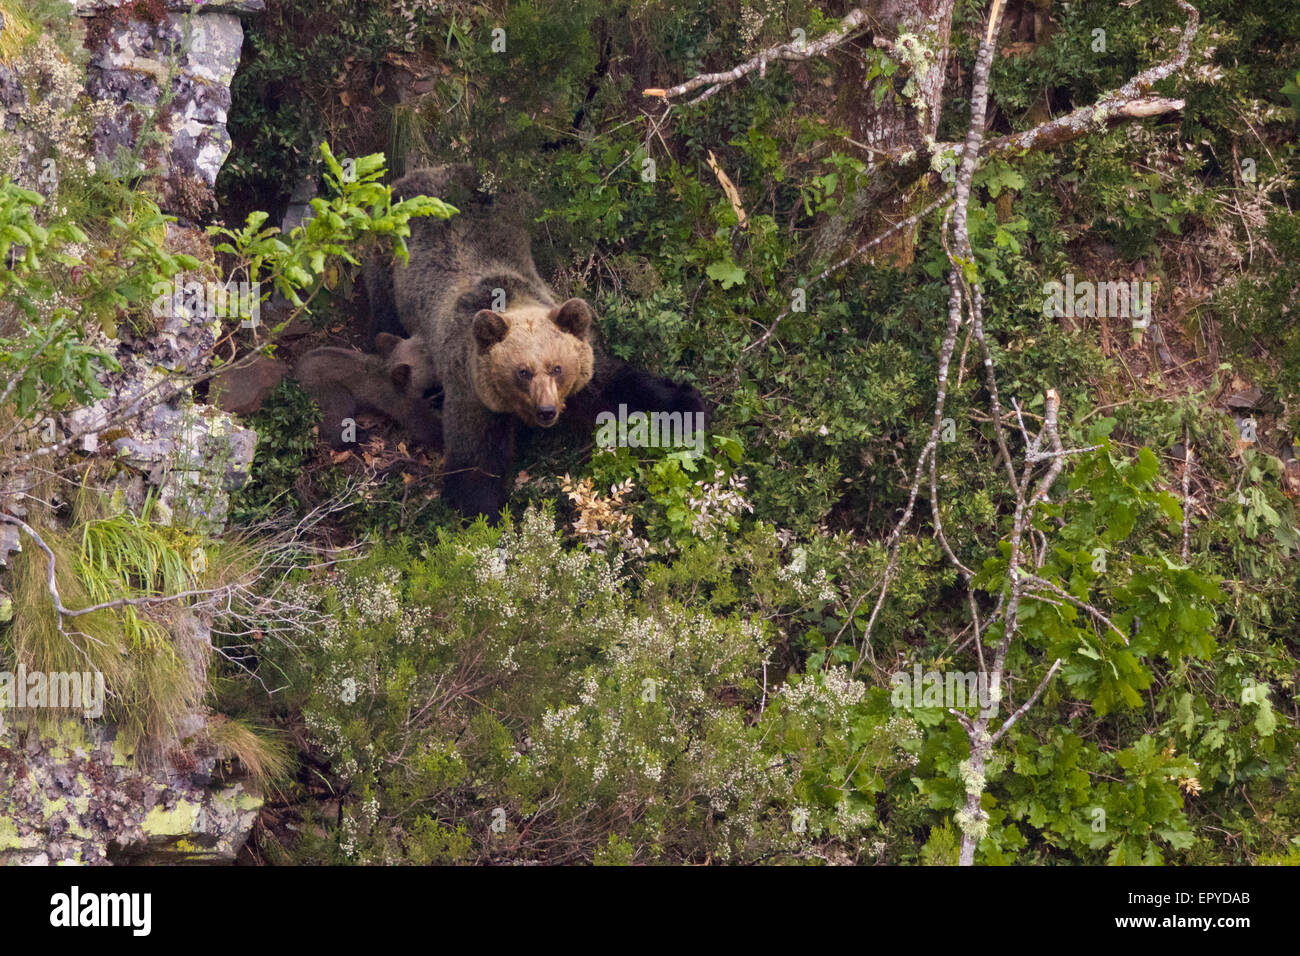 A mother bear nursing her cub, at the entrance of her den, in a near-inaccessible area in the Cantabrian Mountains, - Stock Image